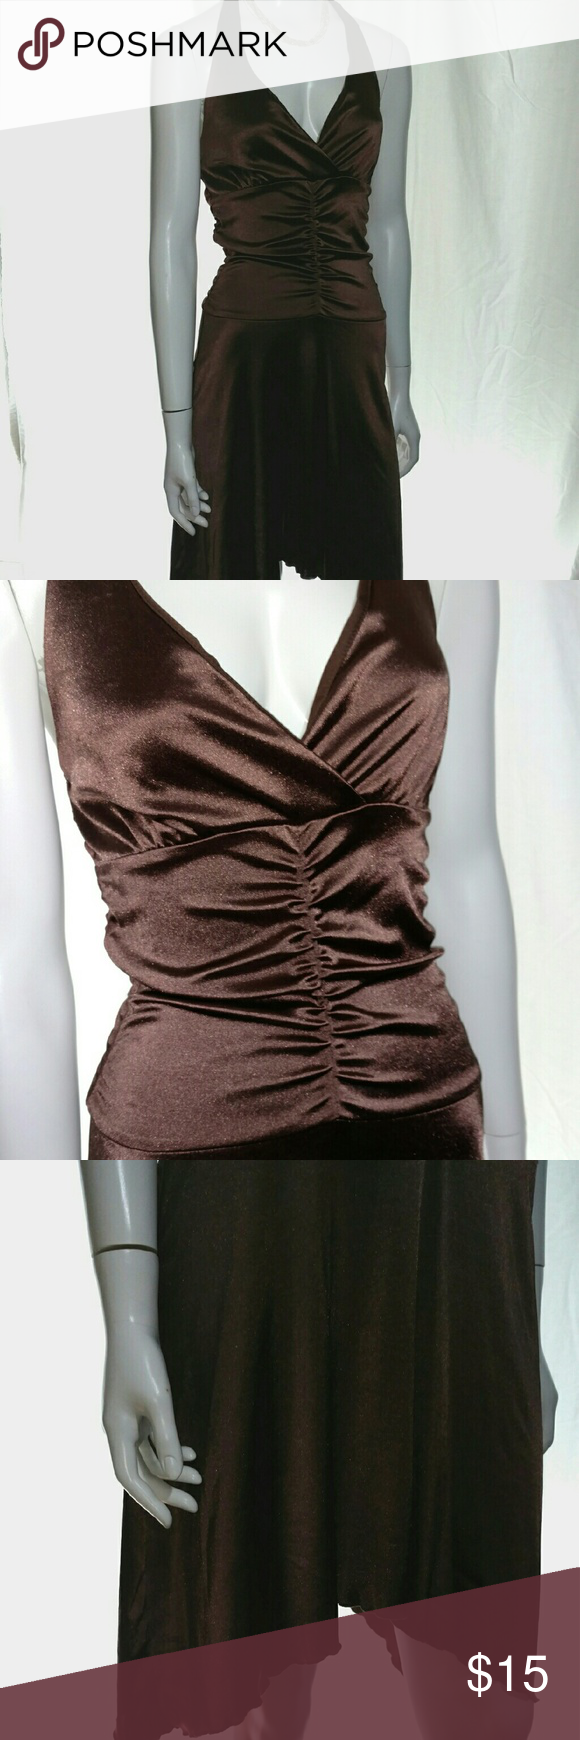 Hourglass dress brown, bronze, M This is a beautiful bronze, brown dress, halter, asymmetrical hem line. V-neck, backless. A few snags, price reflects imperfections, more pictures upon request hourglass Dresses Midi